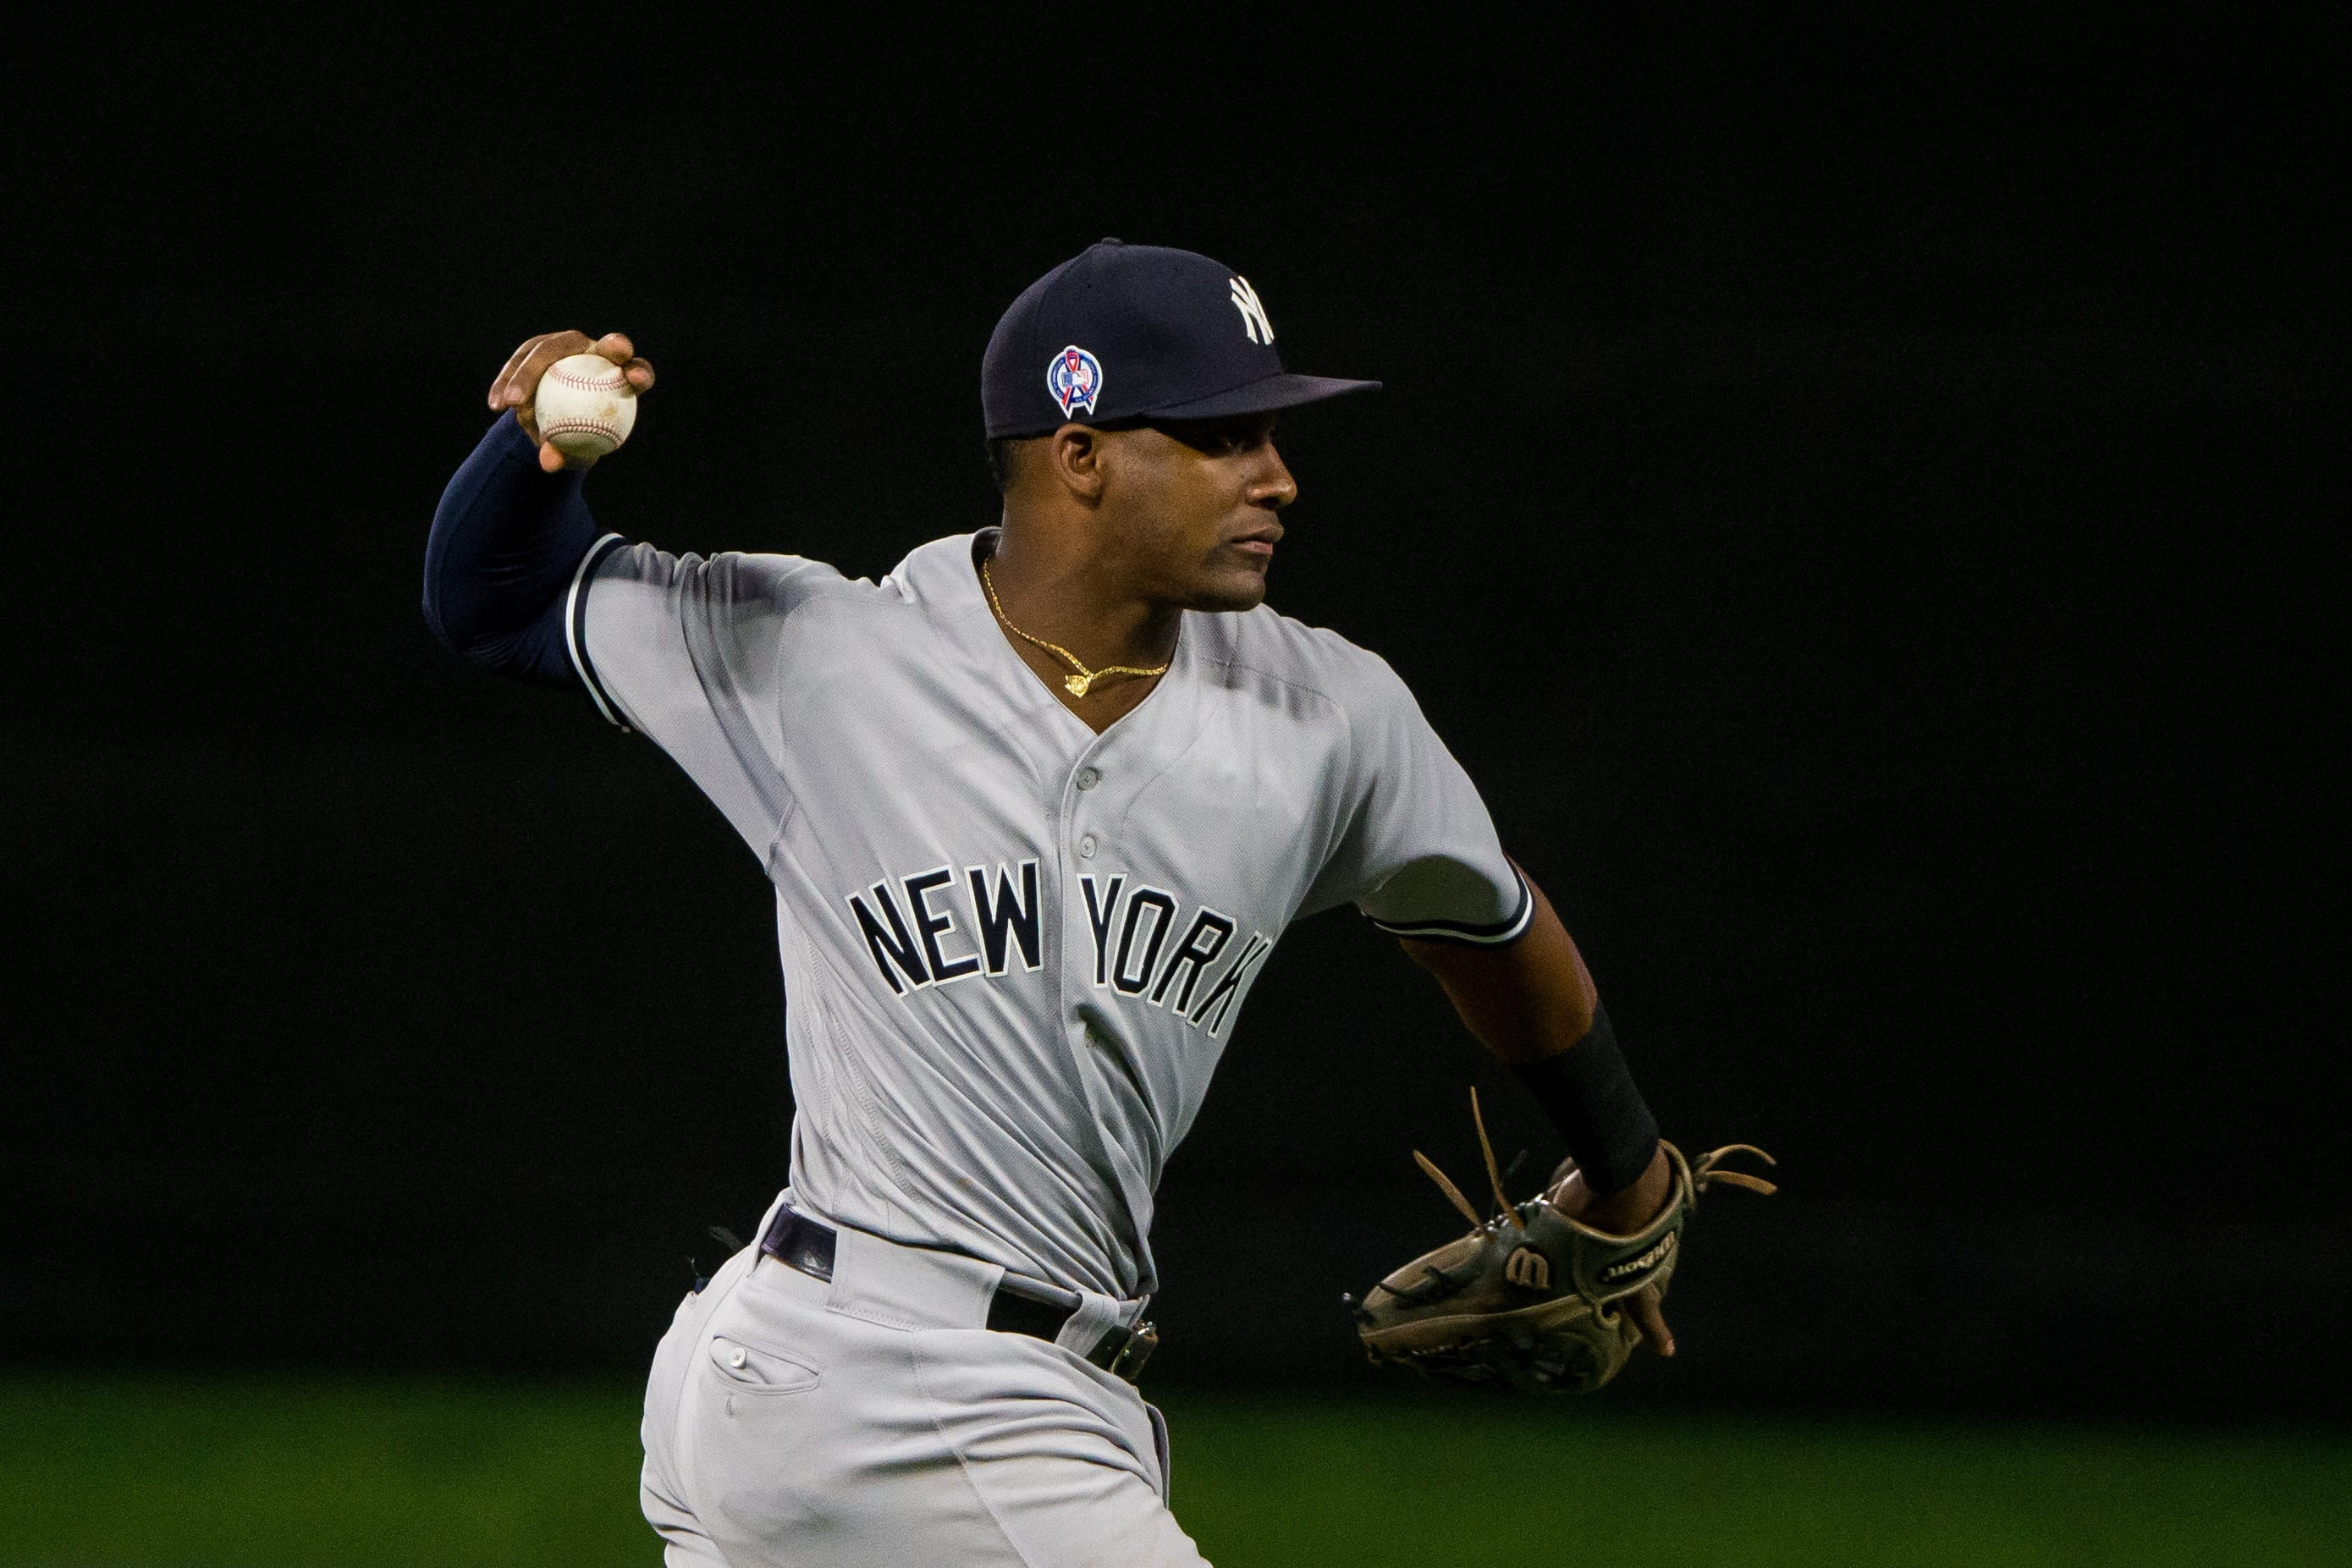 New York Yankees, Miguel Andujar